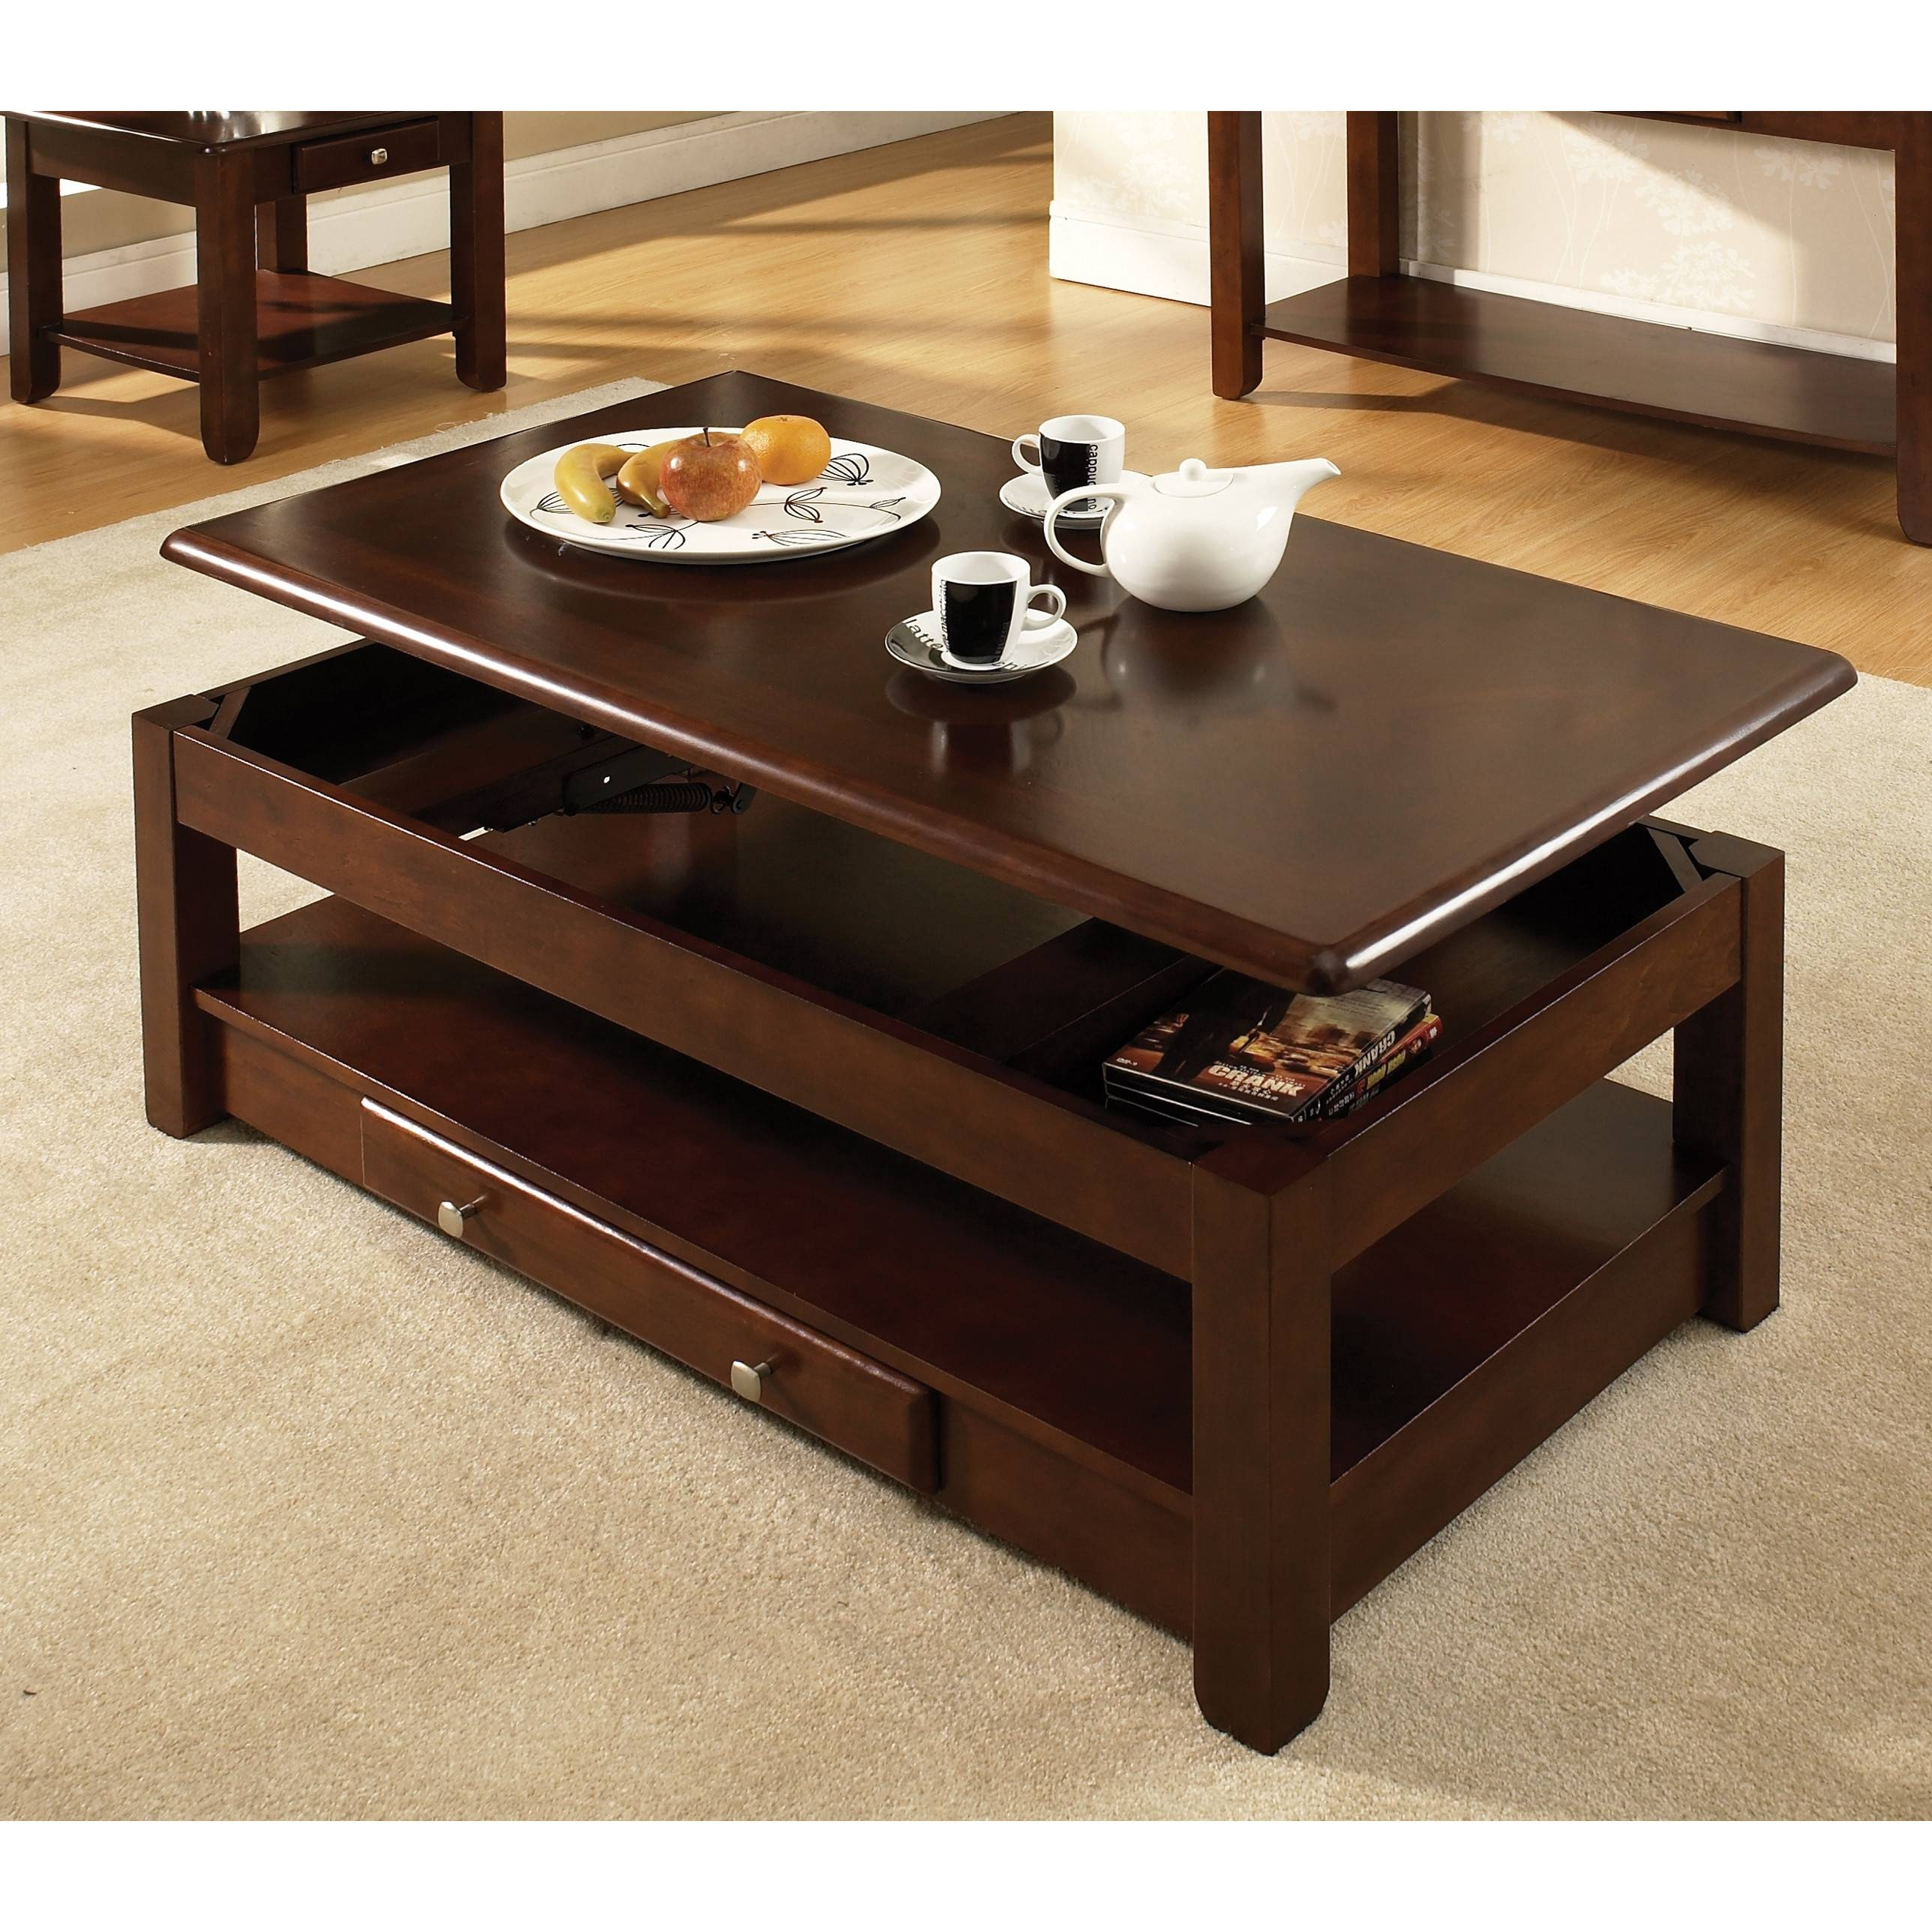 Mainstays Lift Top Coffee Table. Sauder Harbor View Lift Top with Coffee Tables With Raisable Top (Image 16 of 30)